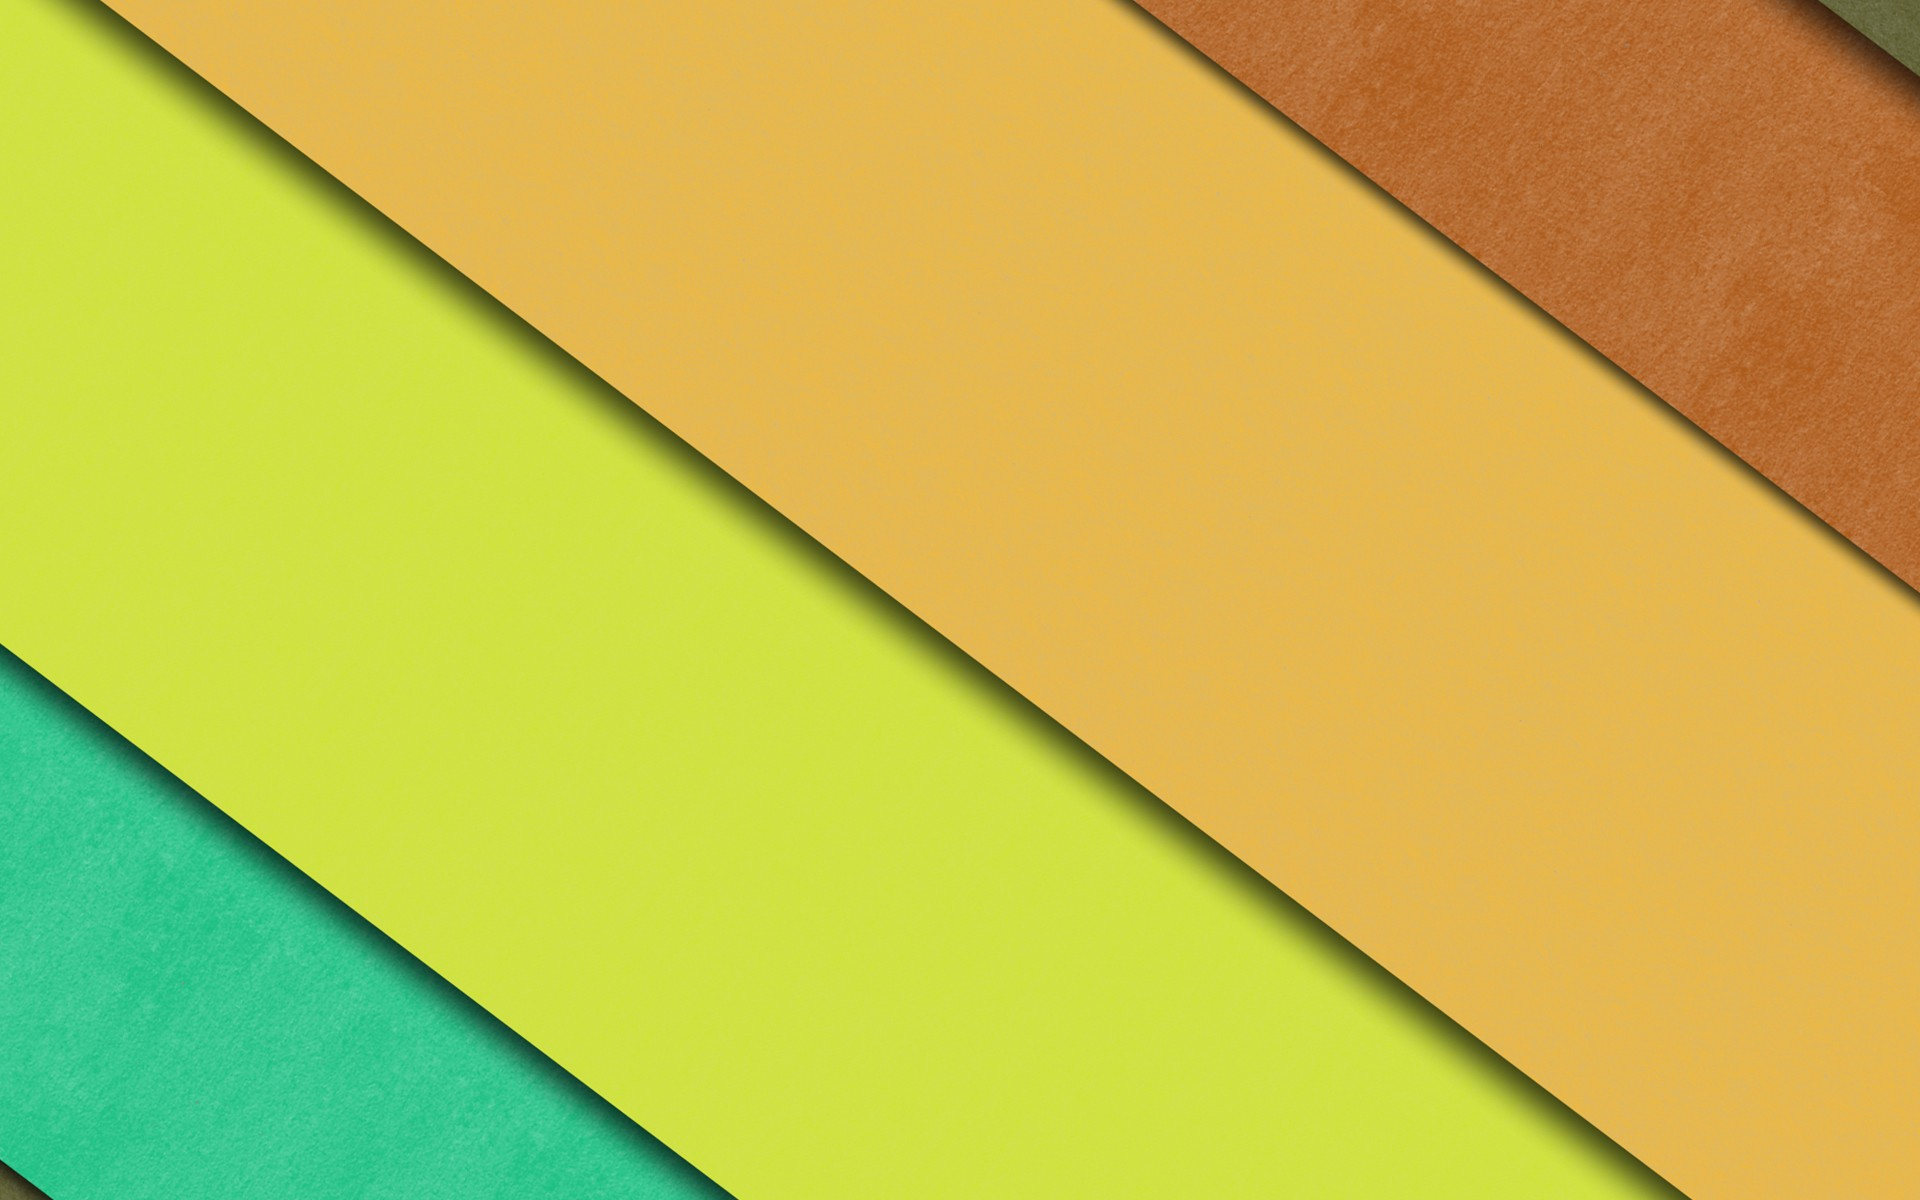 Modern Google Material Design HD Wallpaper 149